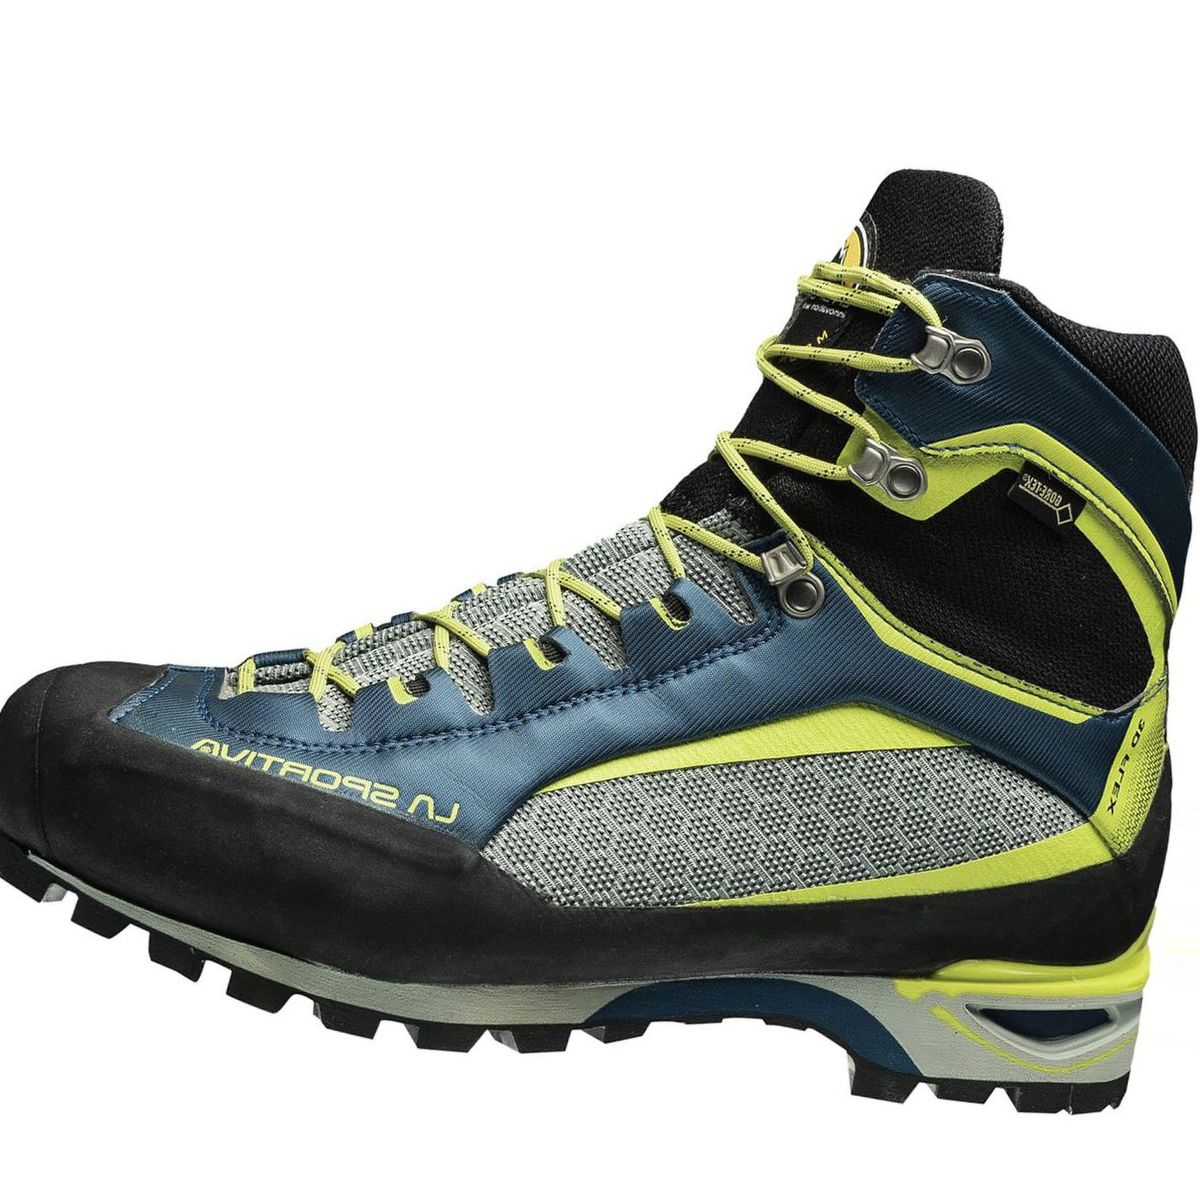 La Sportiva Trango Tower GTX Mountaineering Boot - Men's